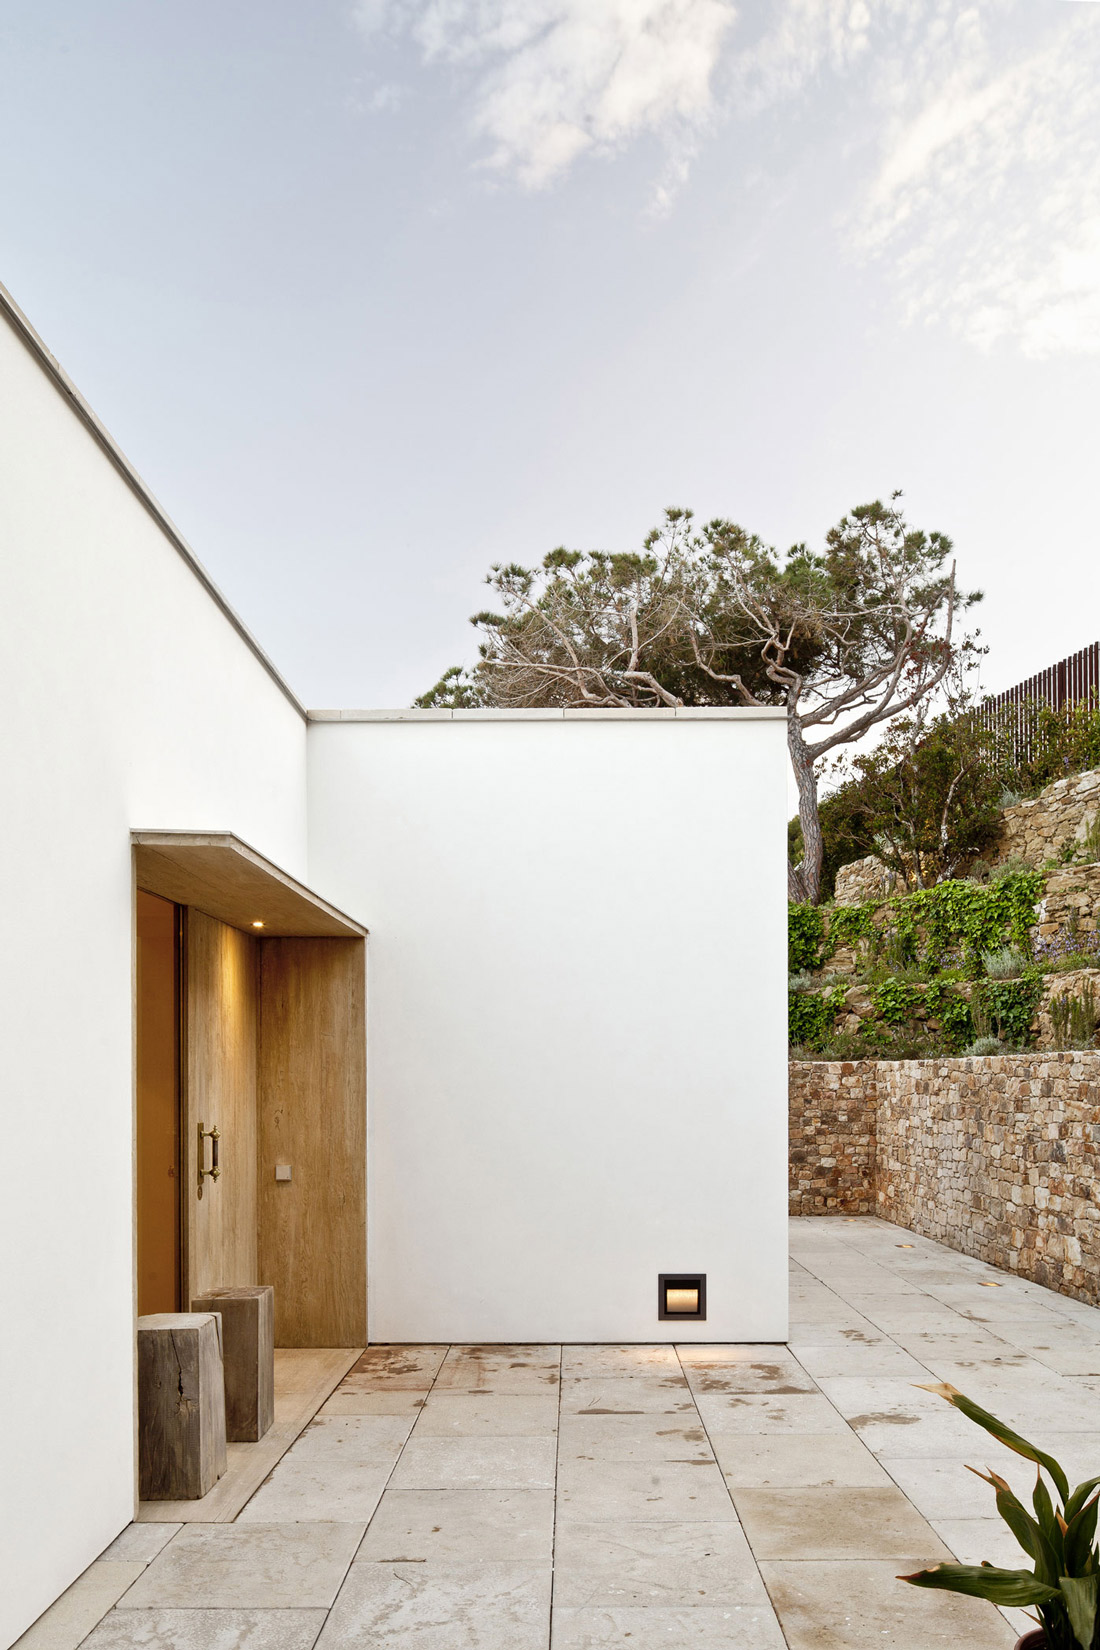 Entrance, Wooden Front Door, Stone Walls, Waterfront House in Costa Brava, Spain